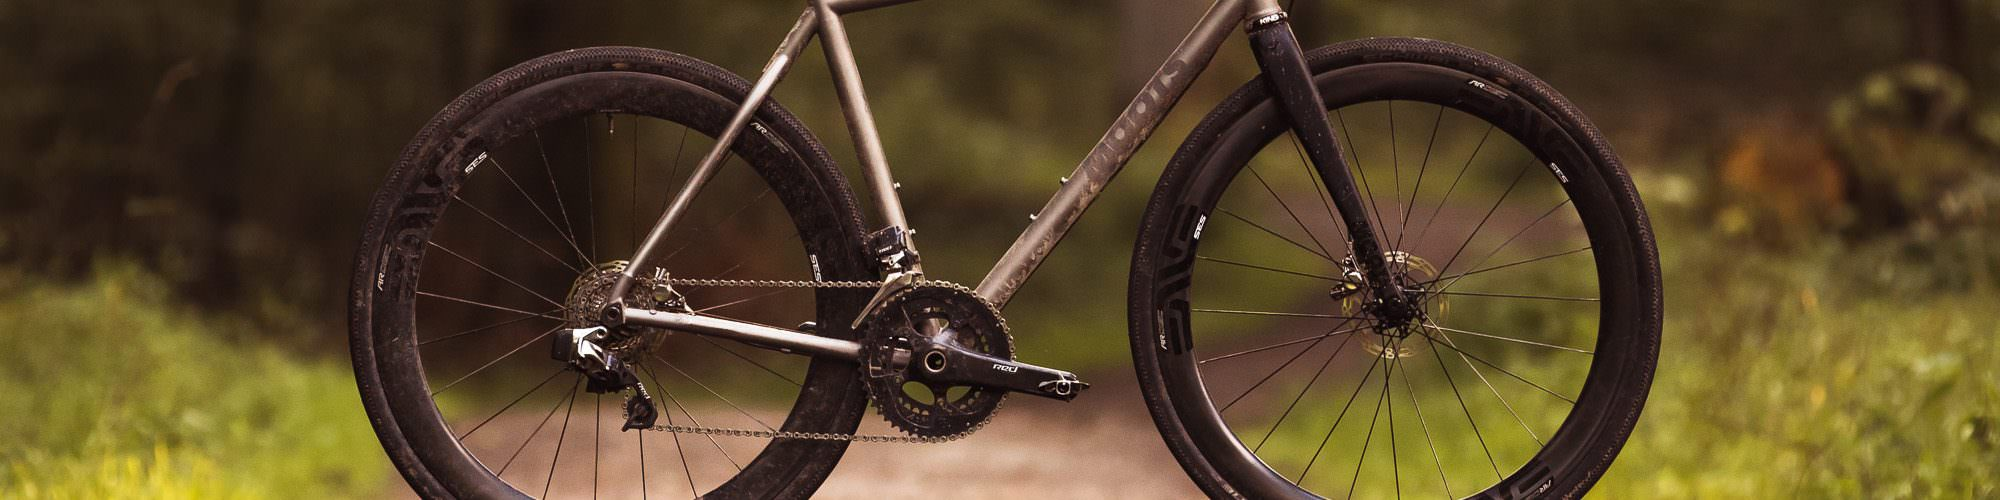 Moots Routt RSL Review | GRAN FONDO Cycling Magazine